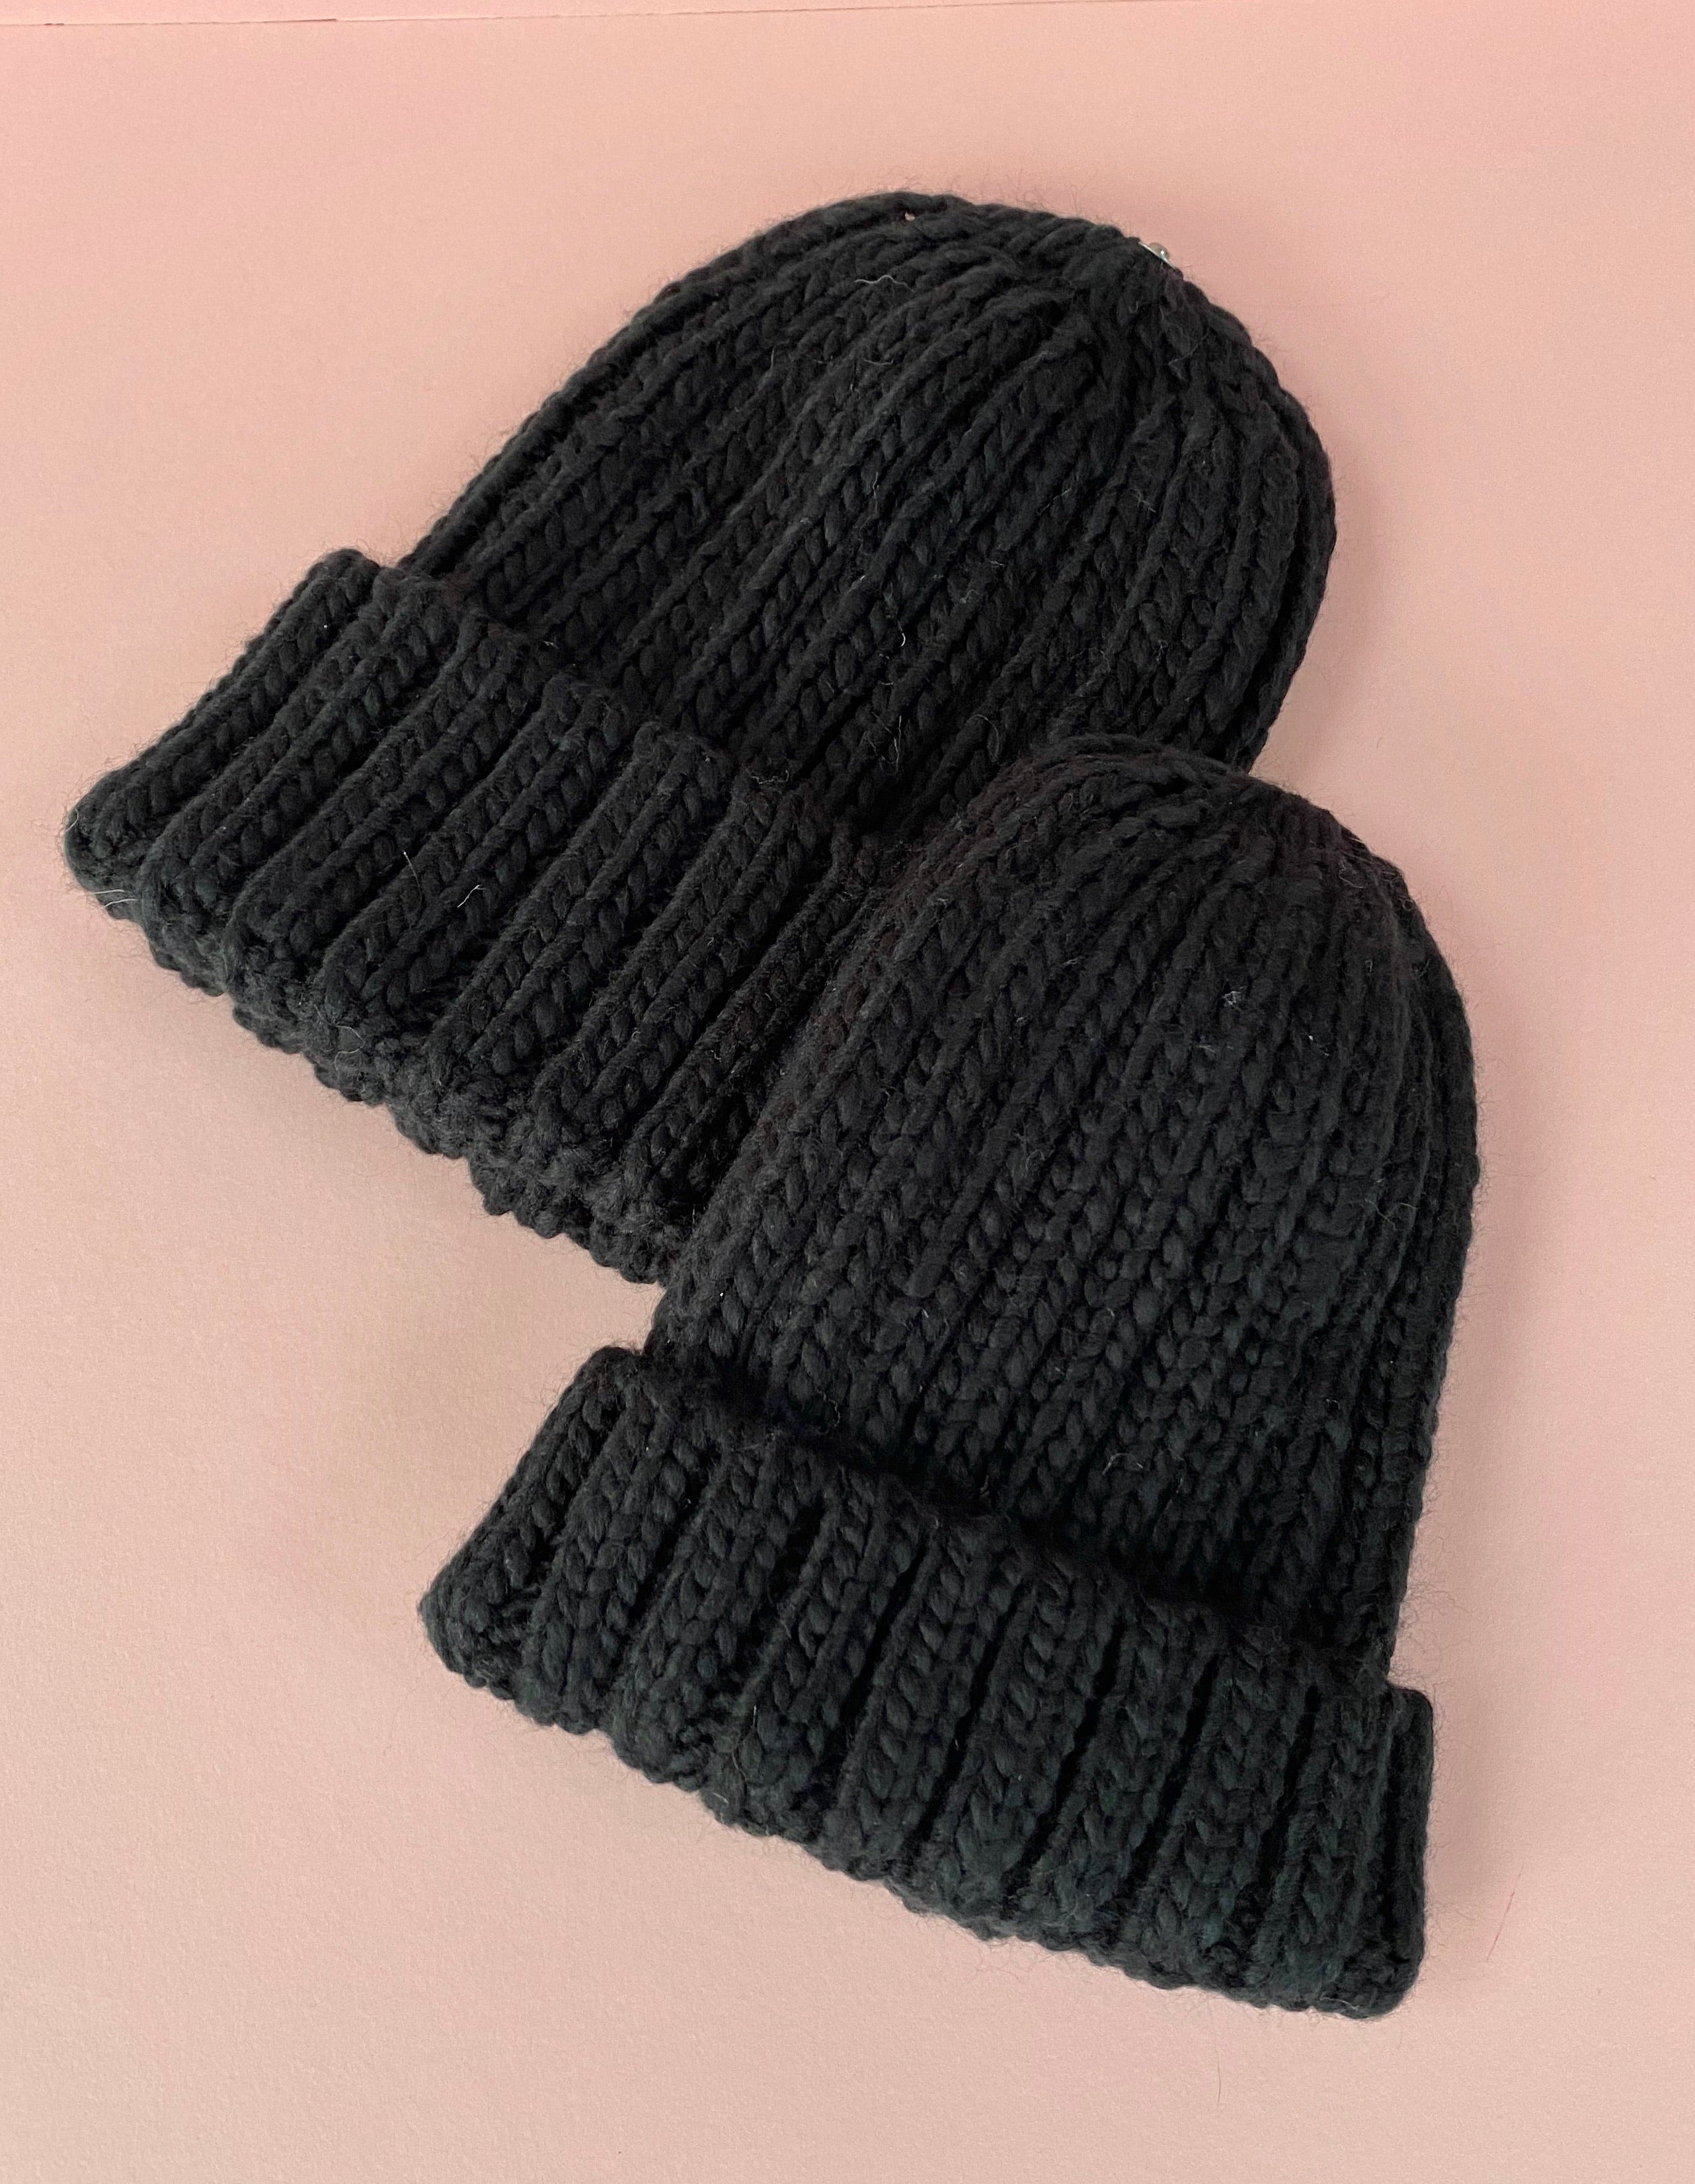 MATCHING ADULT & CHILD BEANIE - Black with customisable pom